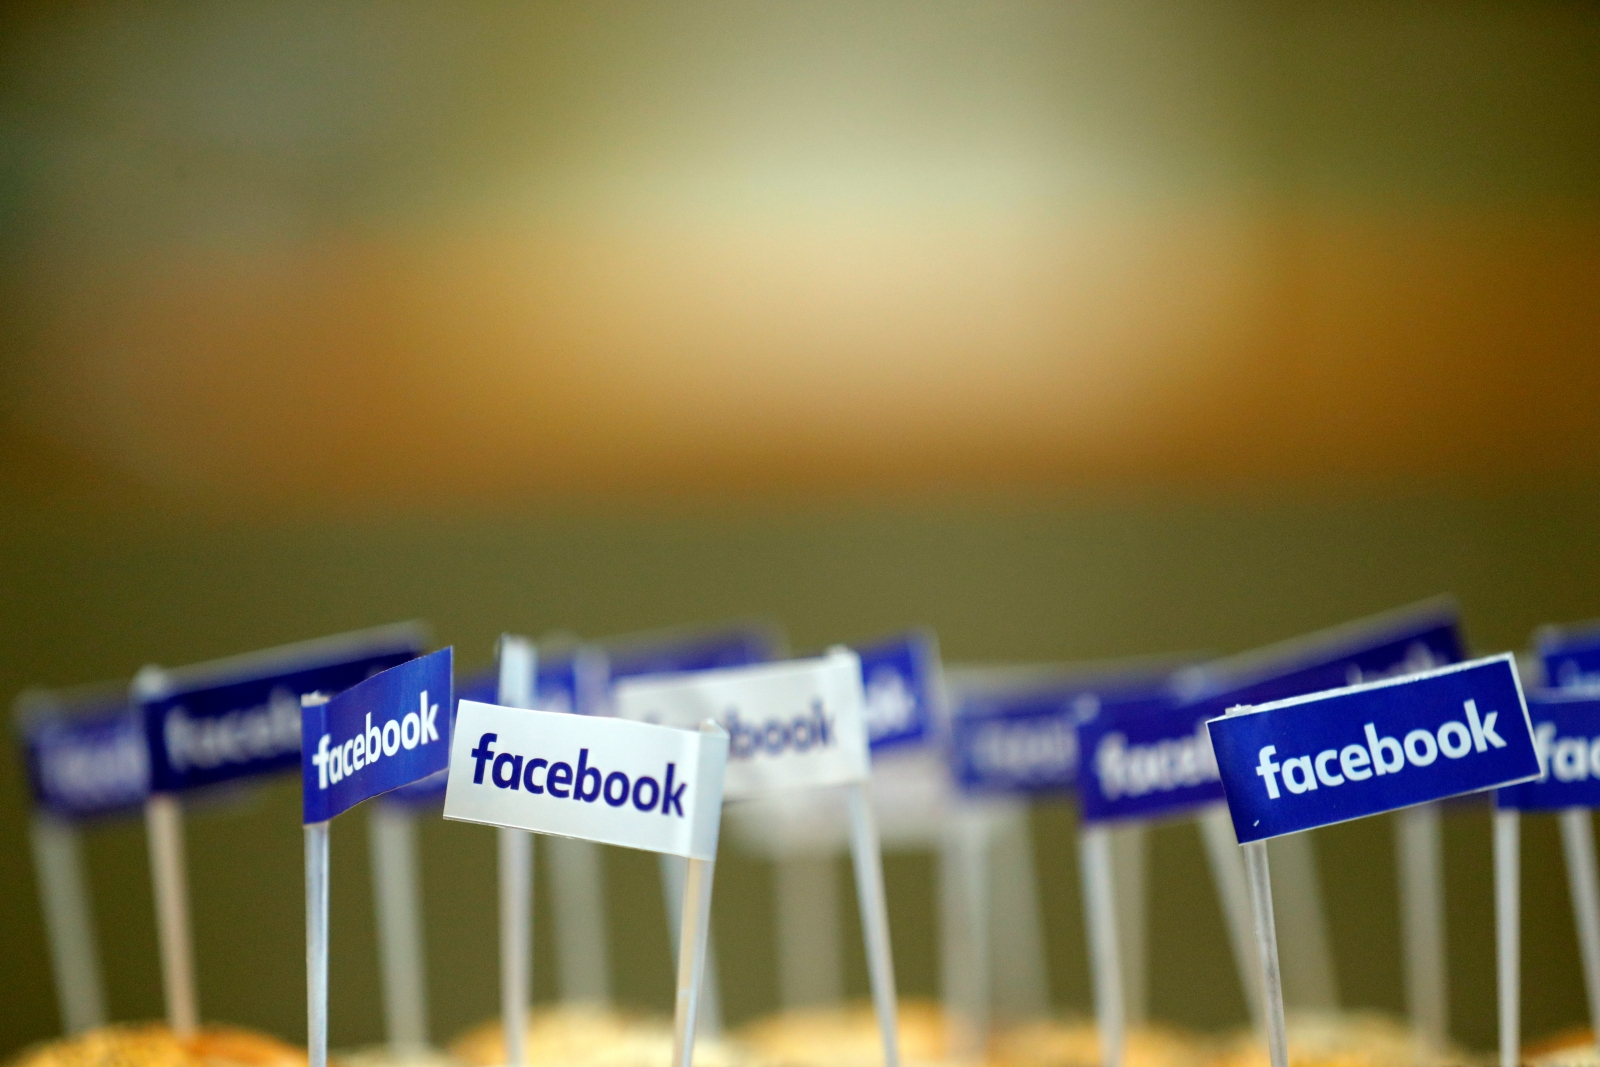 Facebook launches security key